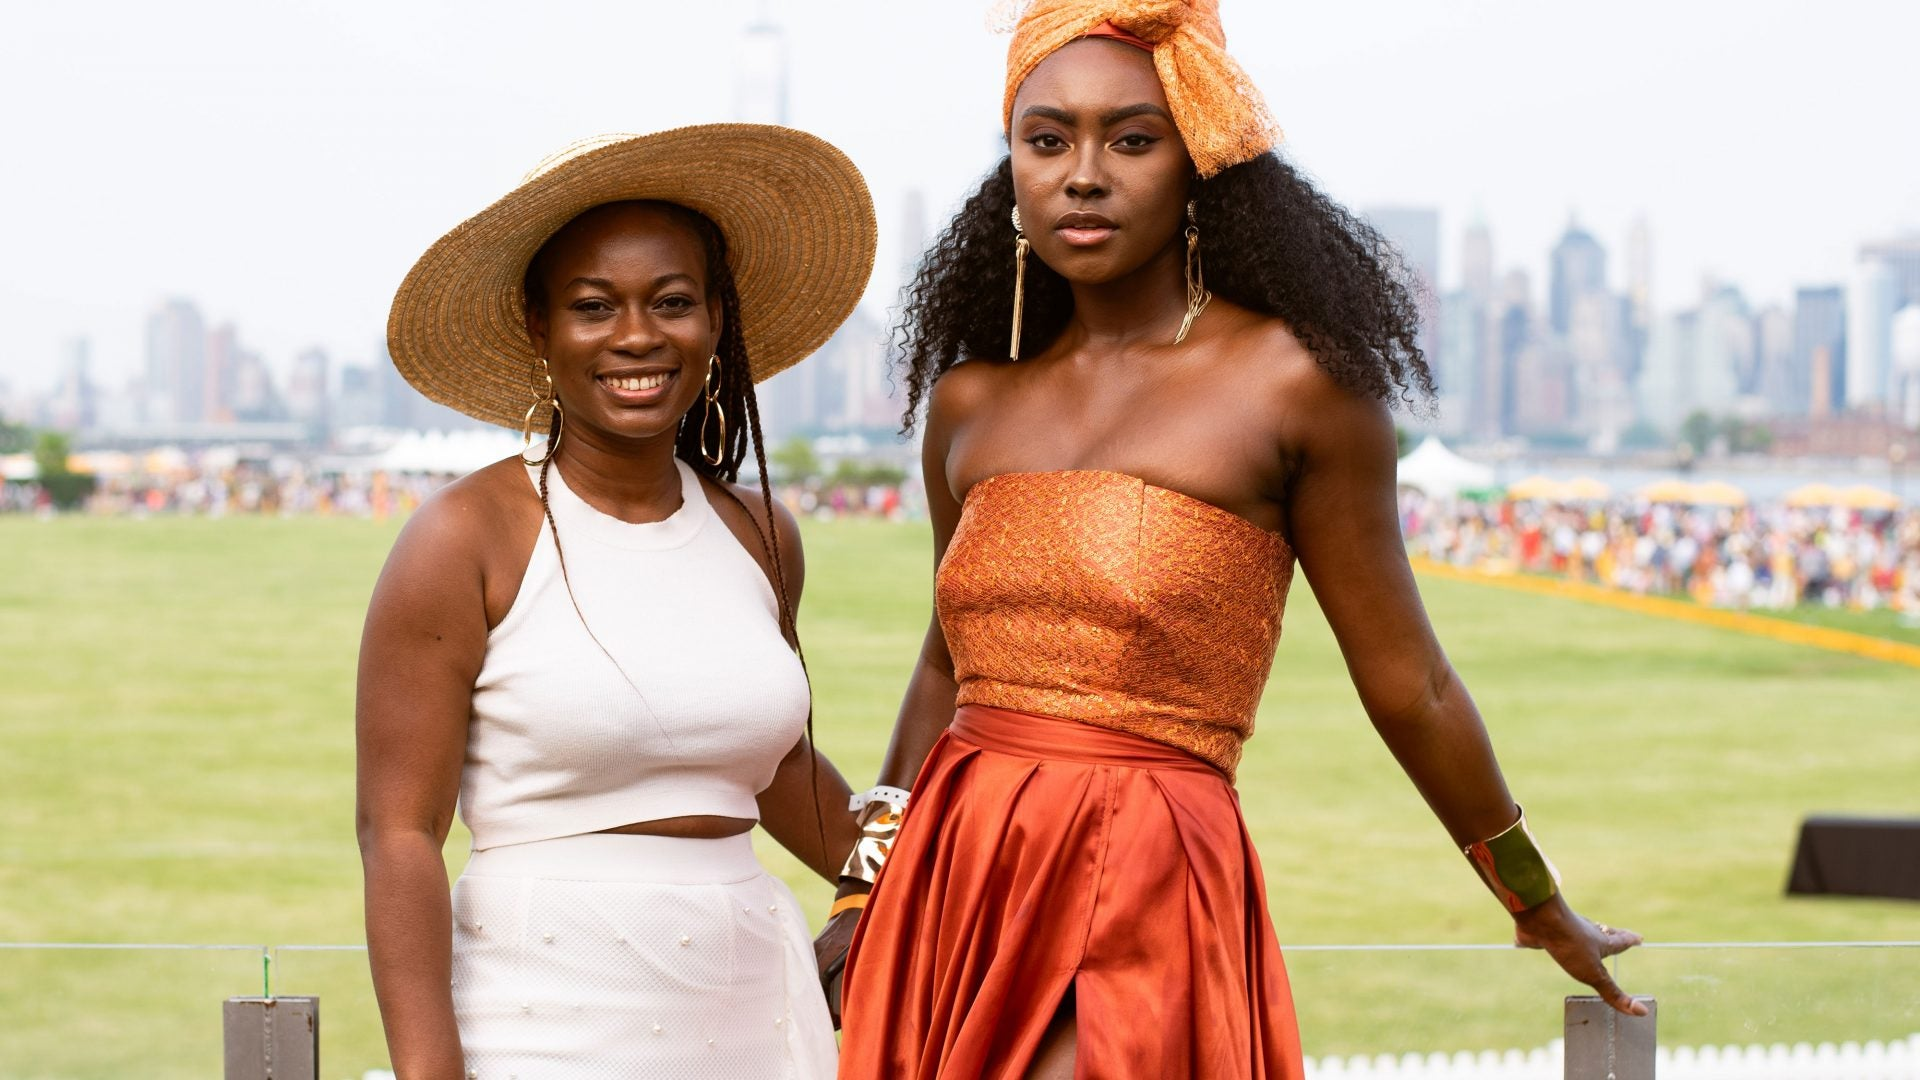 Every Stylish Look At The 12th Annual Veuve Clicquot Polo Classic